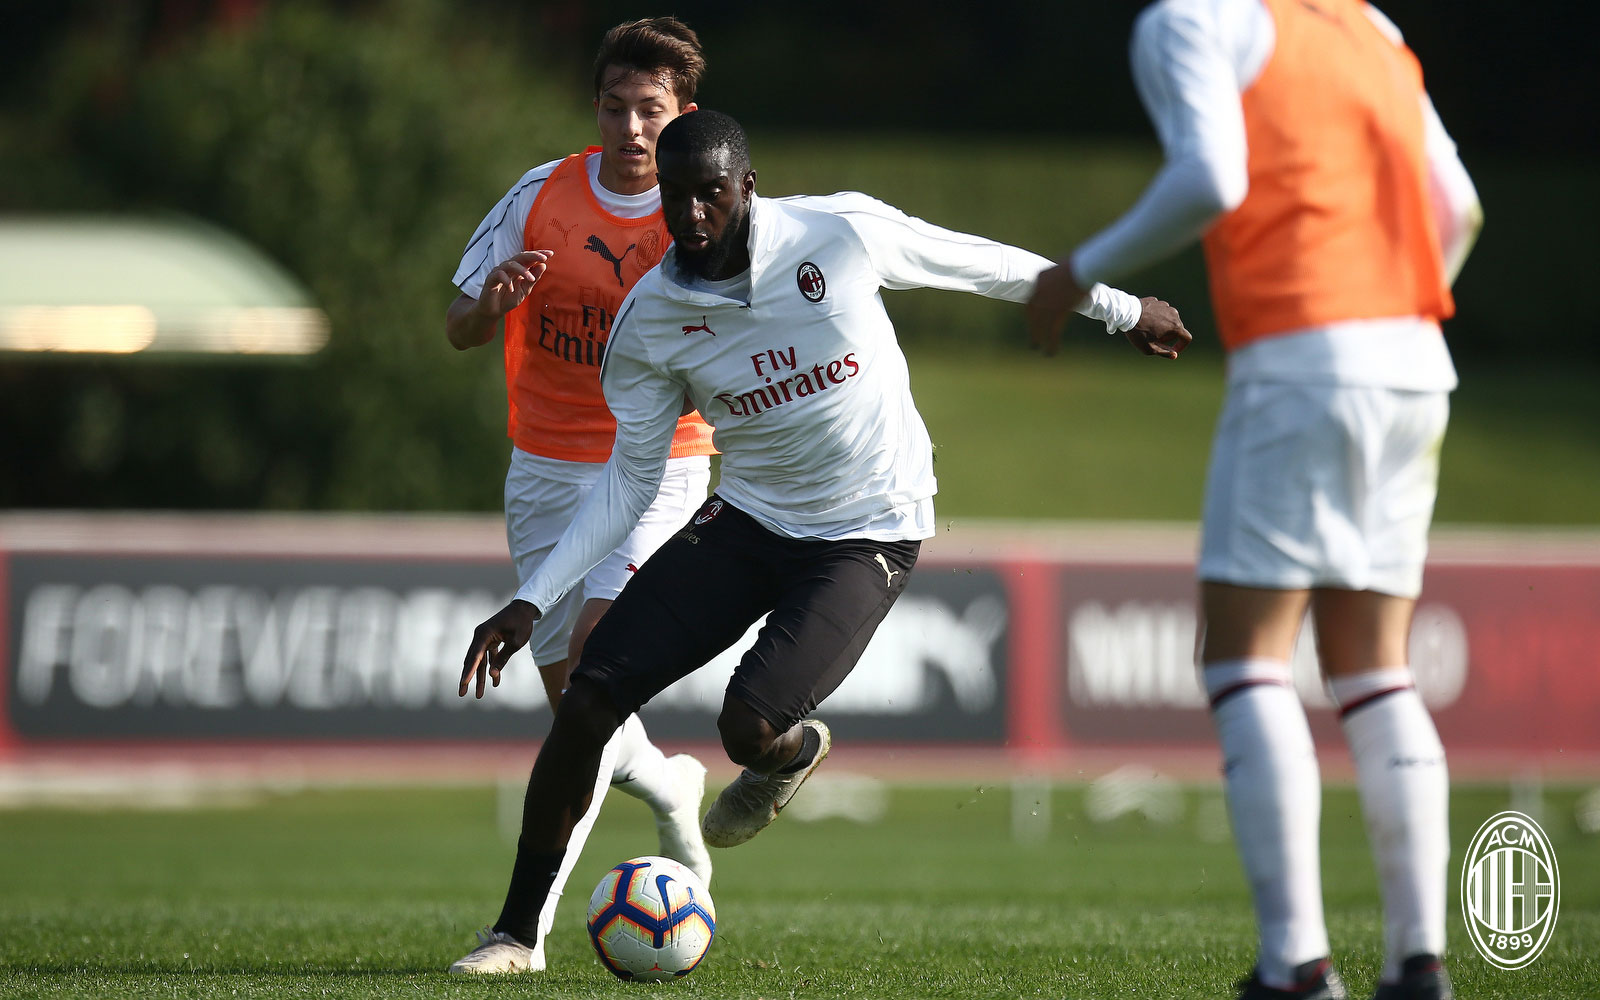 Tiémoué Bakayoko during a training match against the Primavera on October 13, 2018. (@acmilan.com)